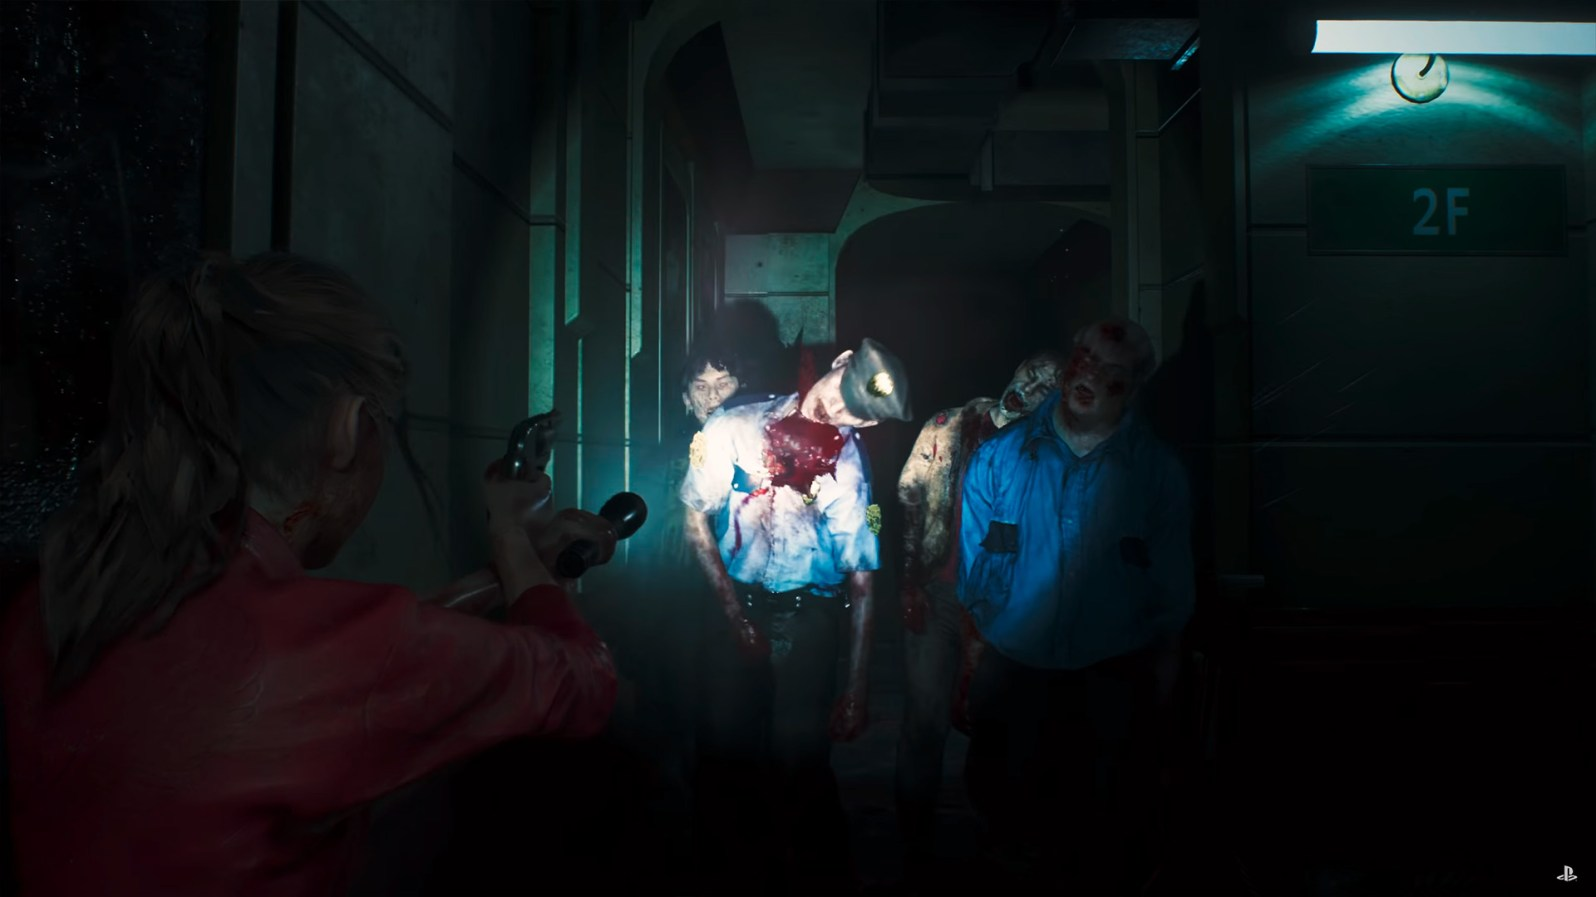 Quelle: Youtube/PlayStation - Resident Evil 2 (Remake)